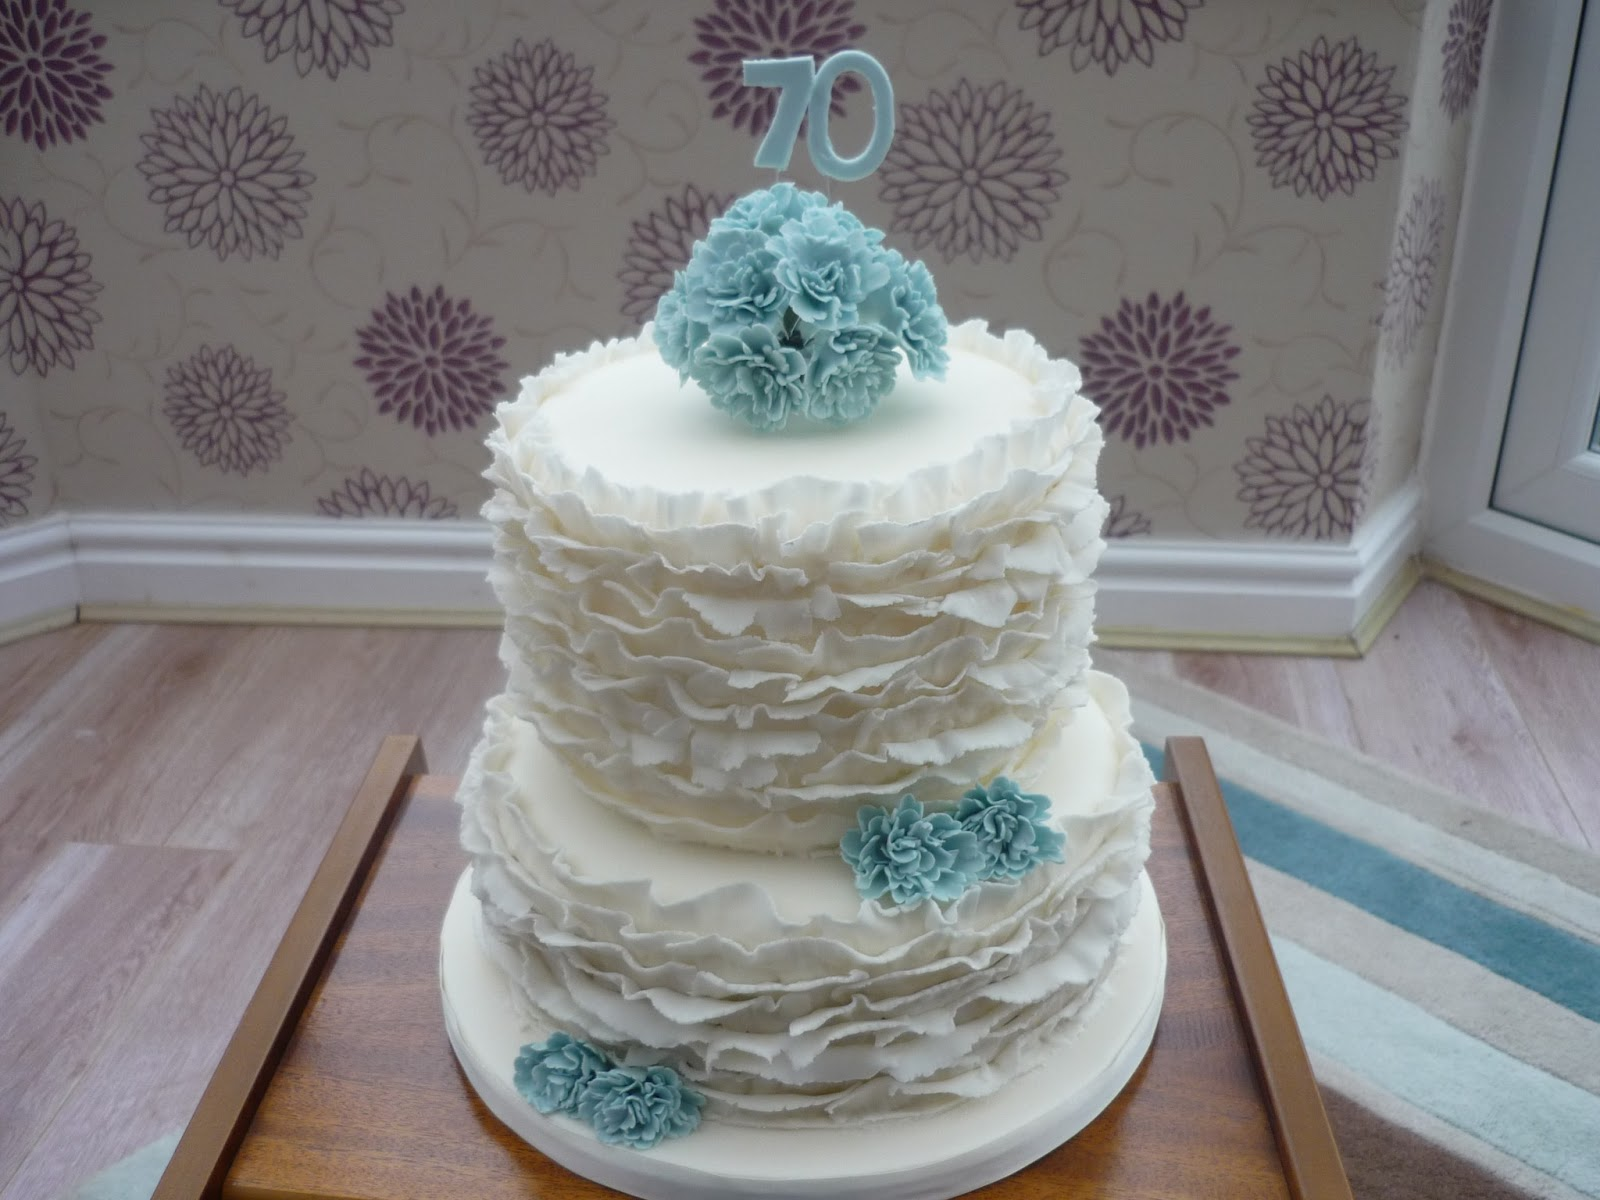 Eat Cakes By Susan: 70th Wedding Anniversary